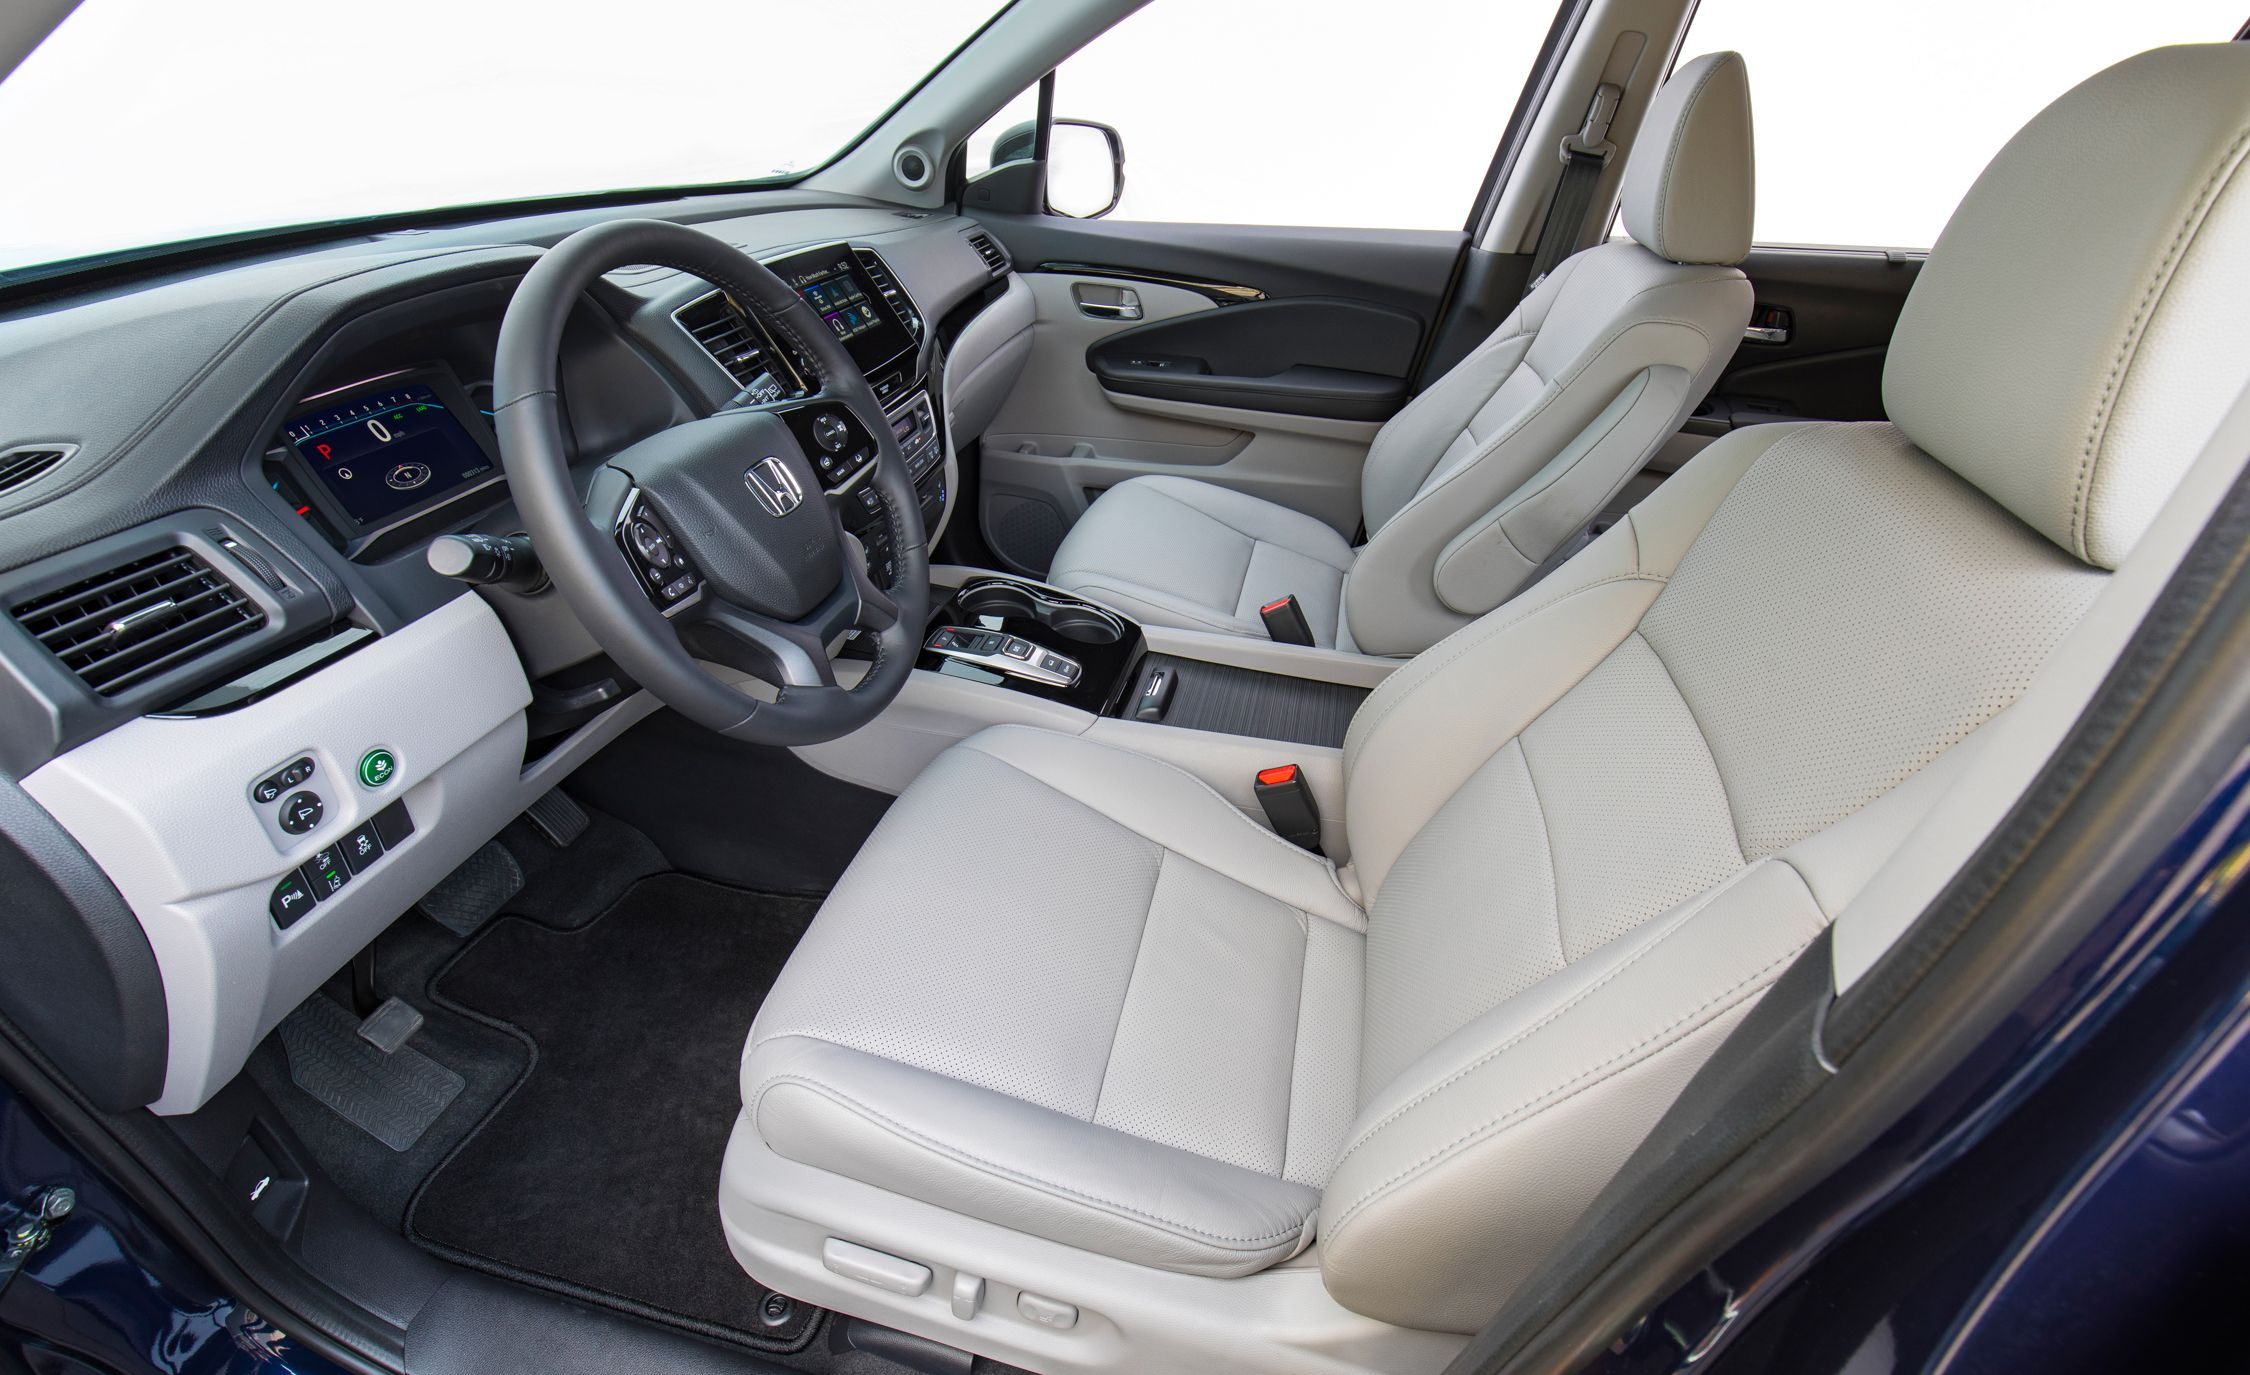 honda pilot captains chairs bucket dining room 2019 reviews price photos and specs car driver